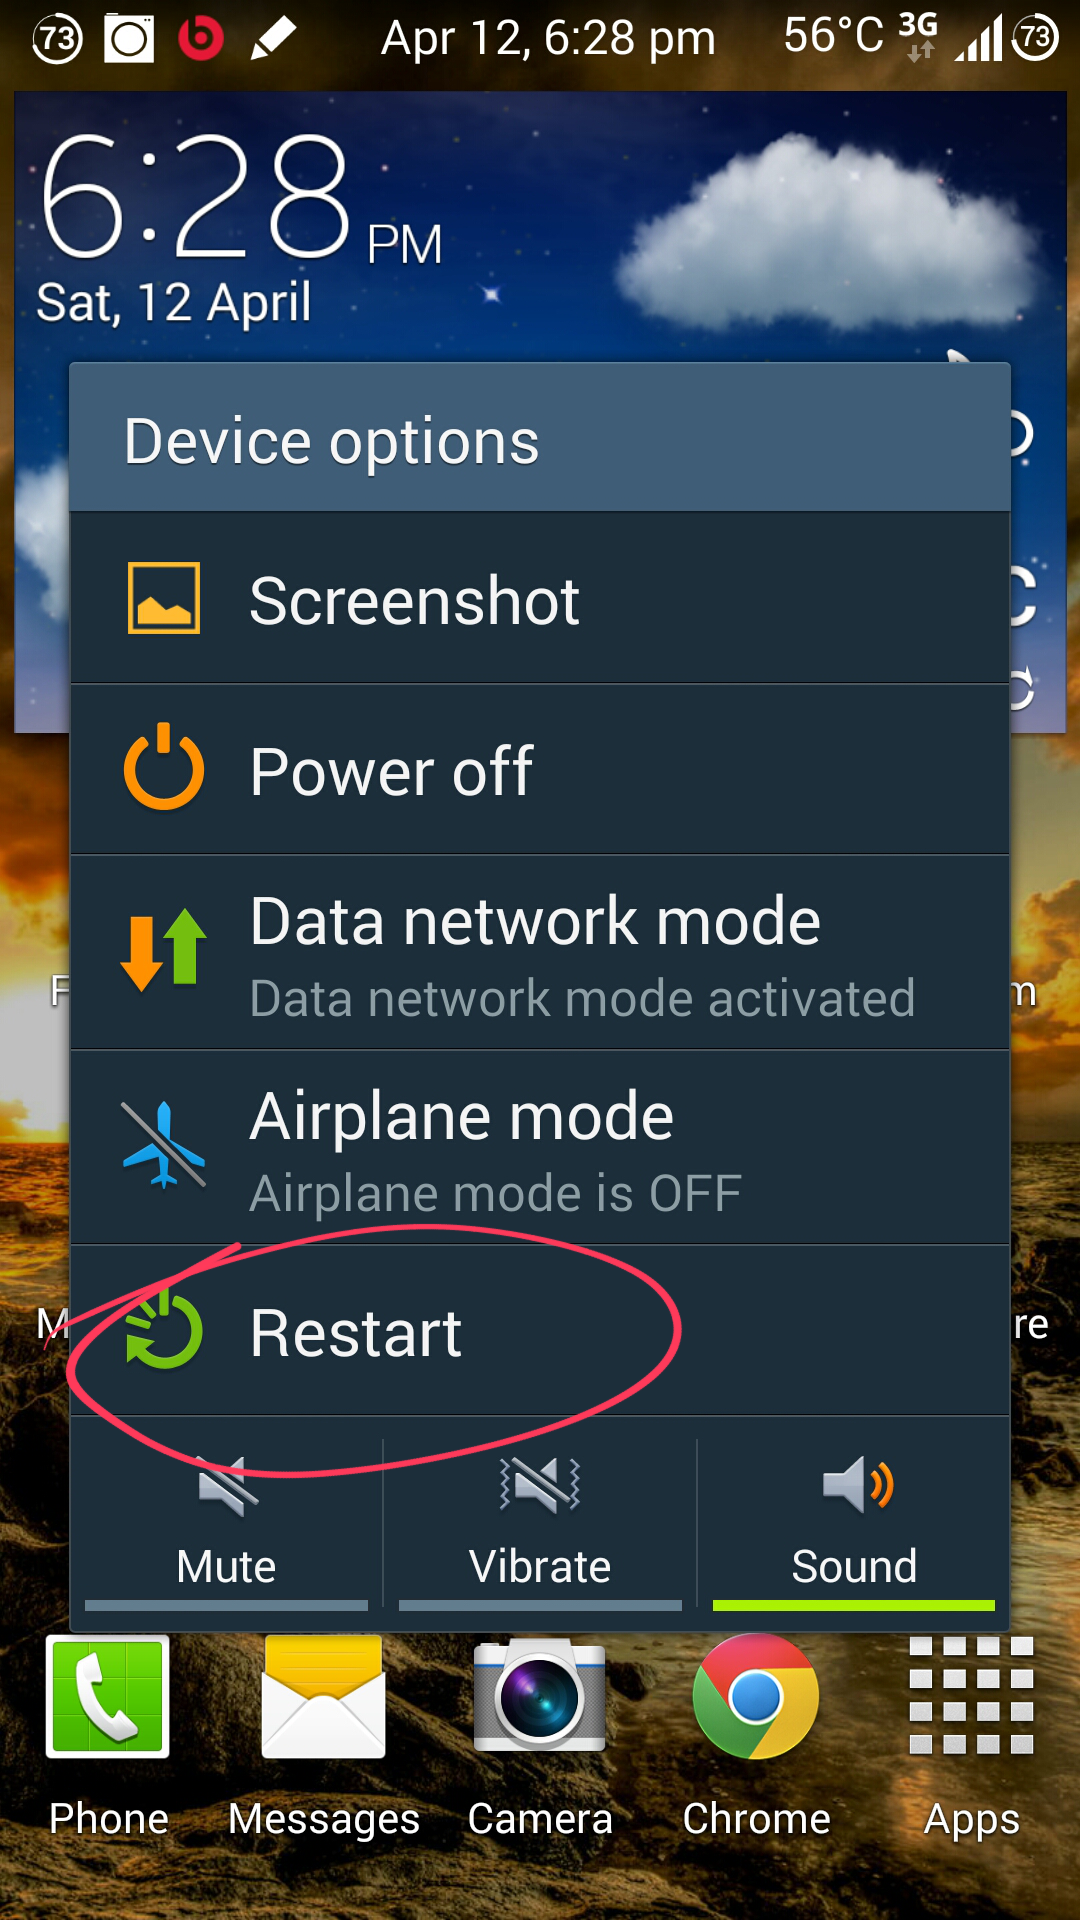 2014 04 12 12.58.56 - HOW TO : Fix the Galaxy Note 3, S4 and a bunch of Flagships to work with 4G in Sri Lanka